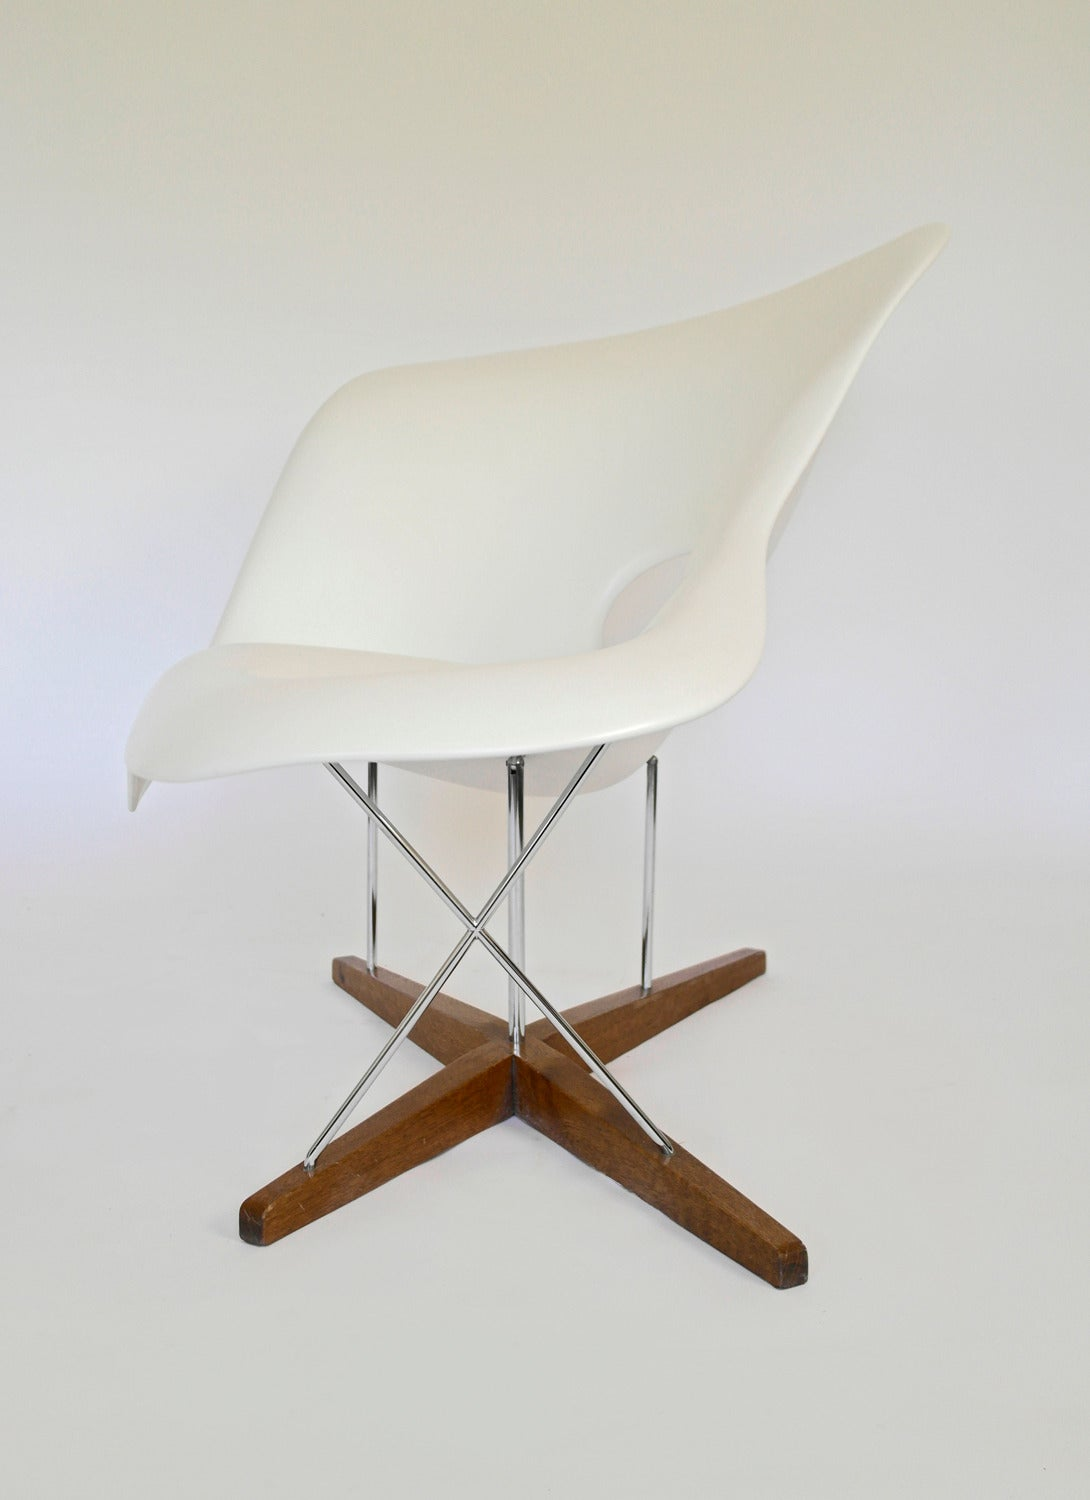 Vitra edition la chaise by charles and ray eames at 1stdibs - Charles et ray eames chaise ...